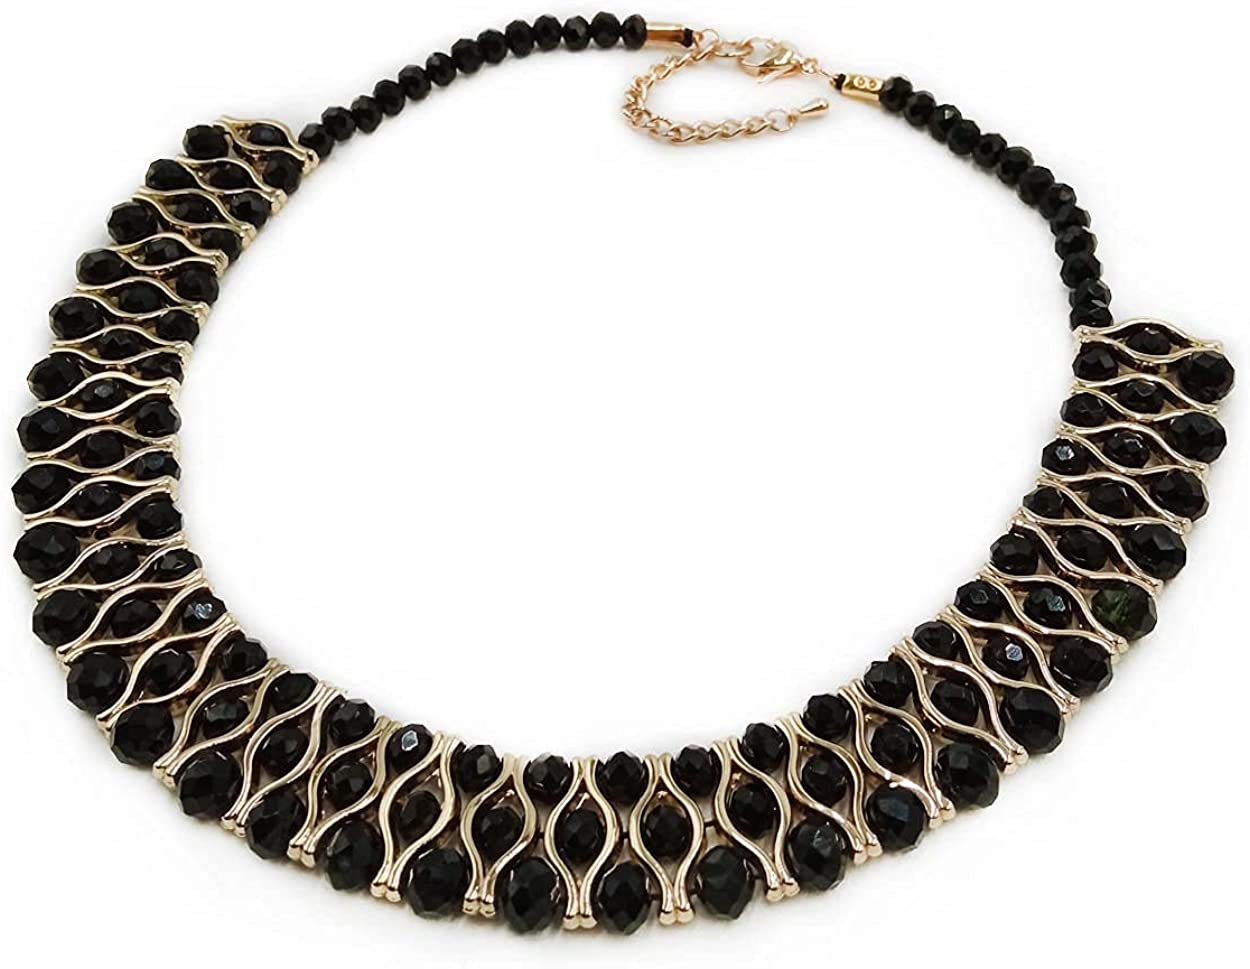 PLYOU Crystal Statement Necklace Collar Choker with Extension Chain Jewelry Gifts in Black